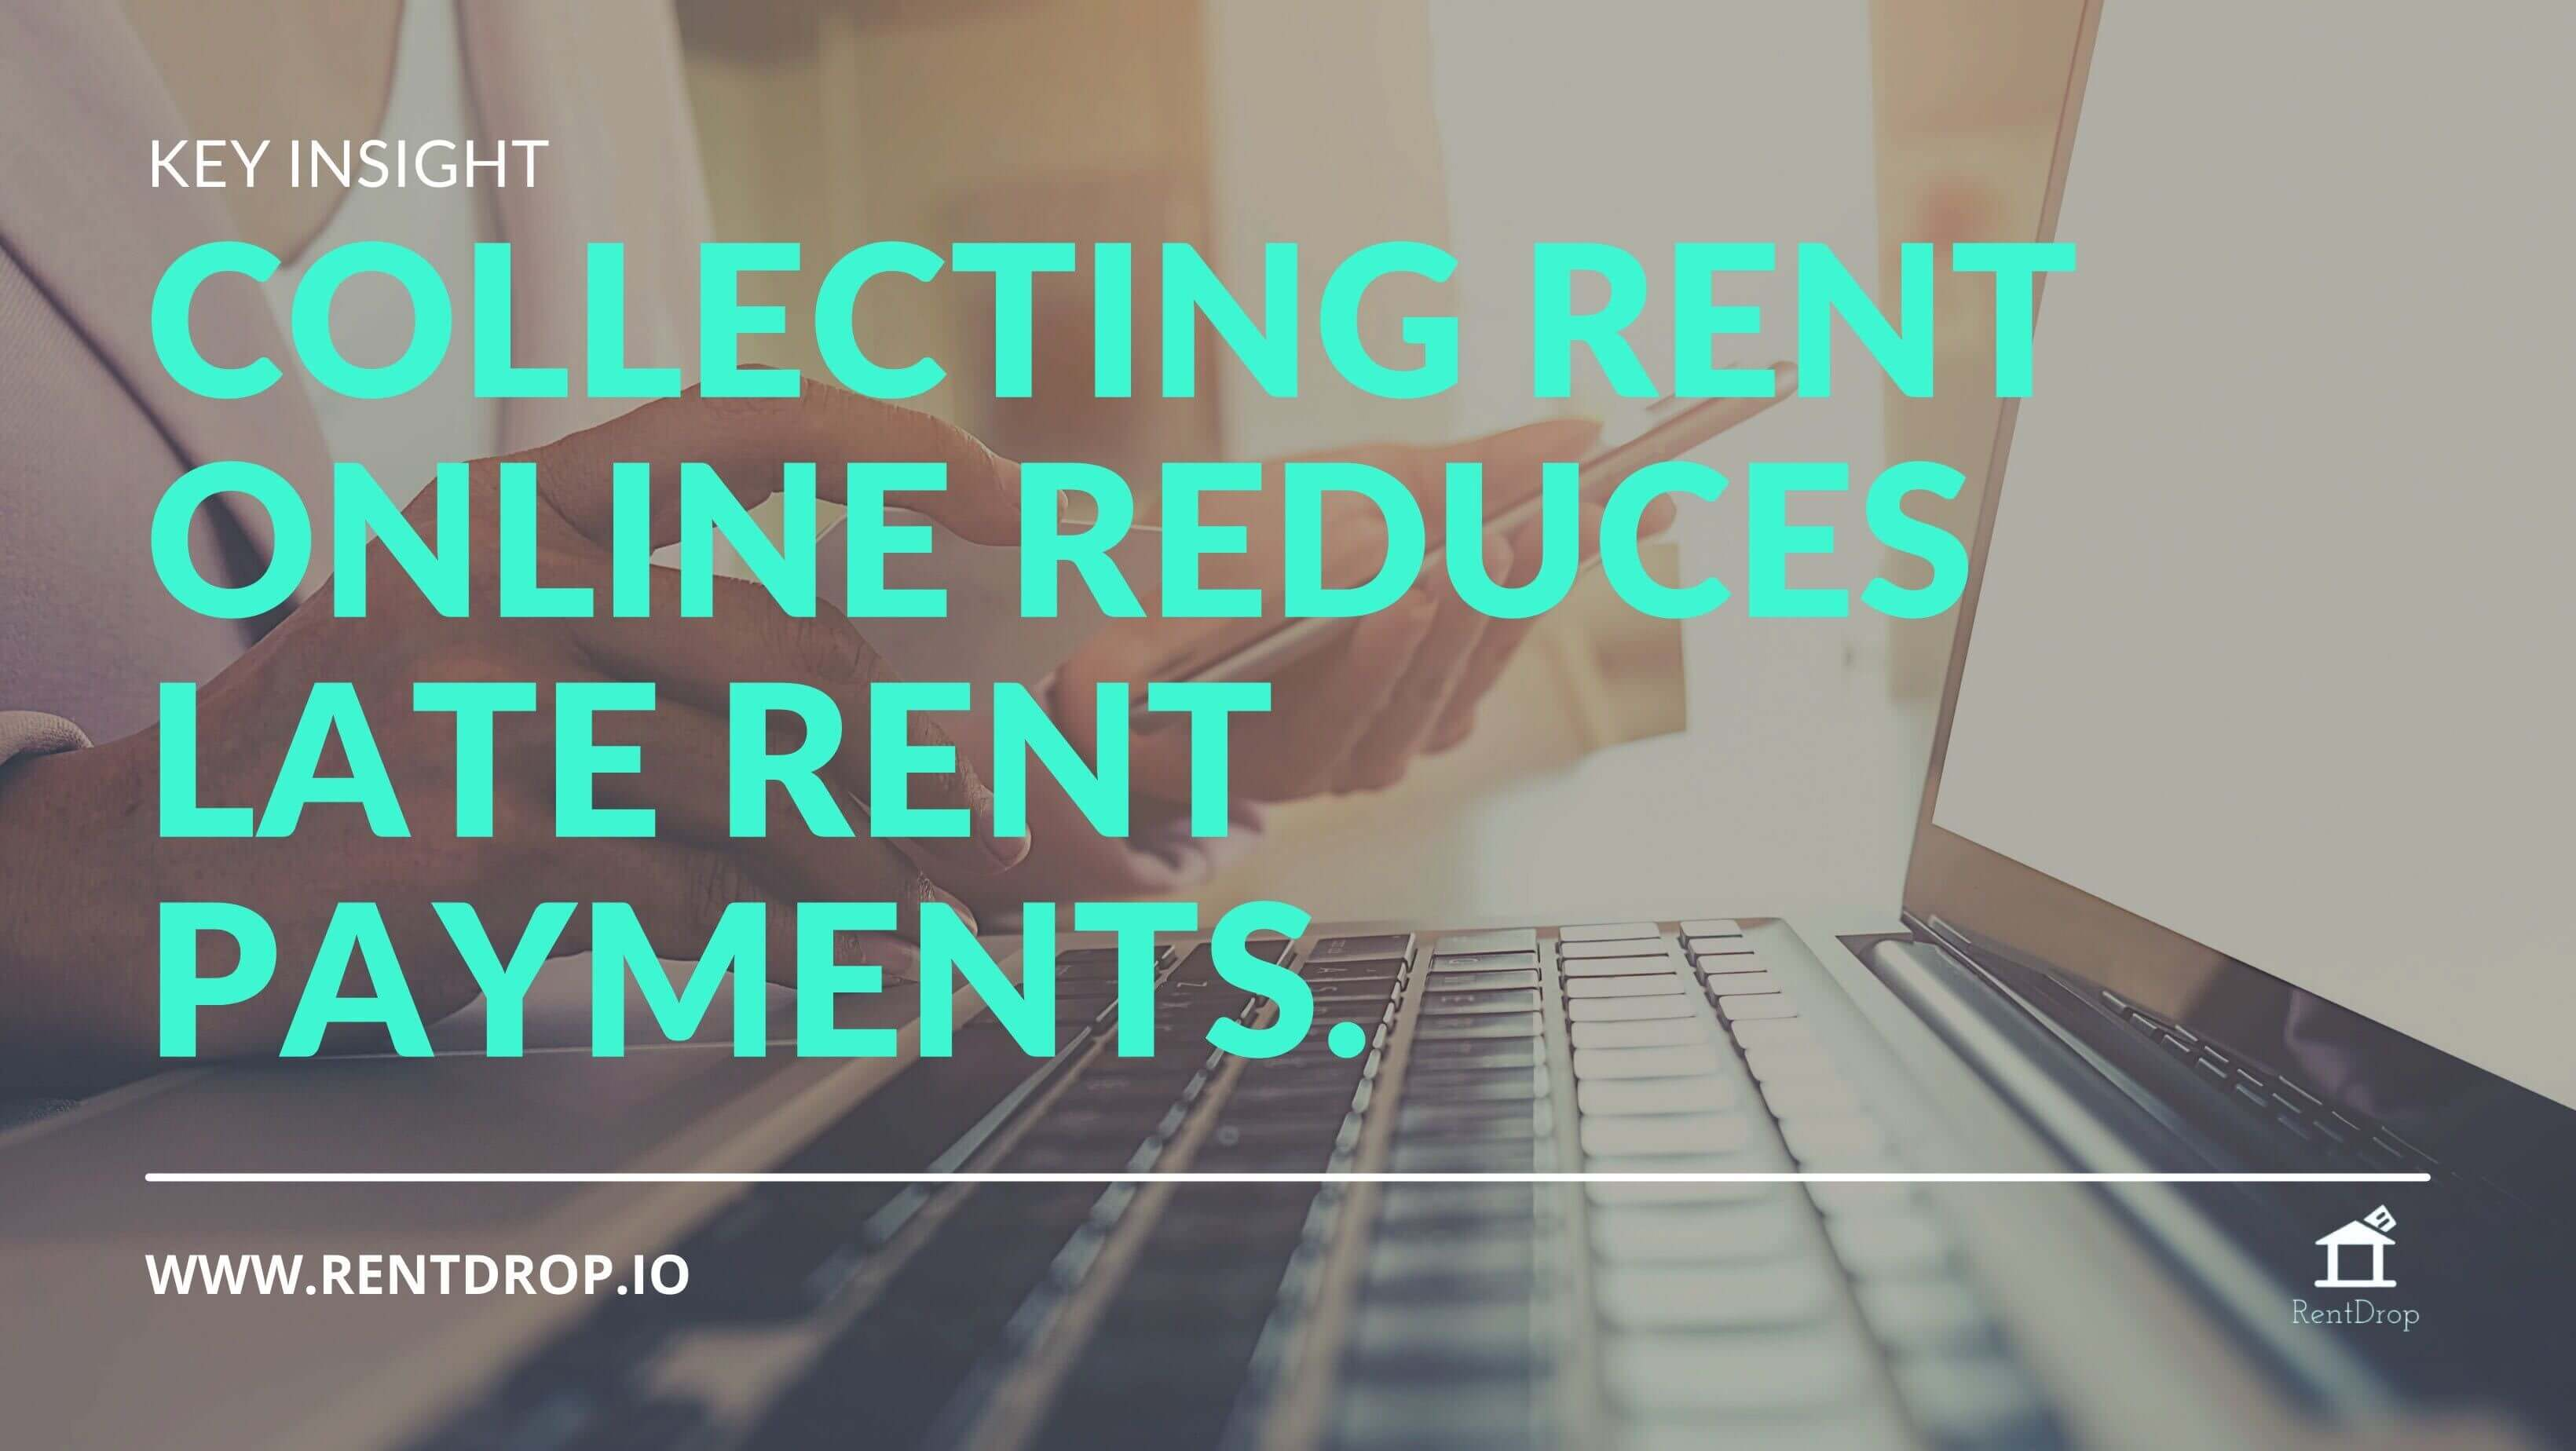 41 -  Key insight Pay Rent Online